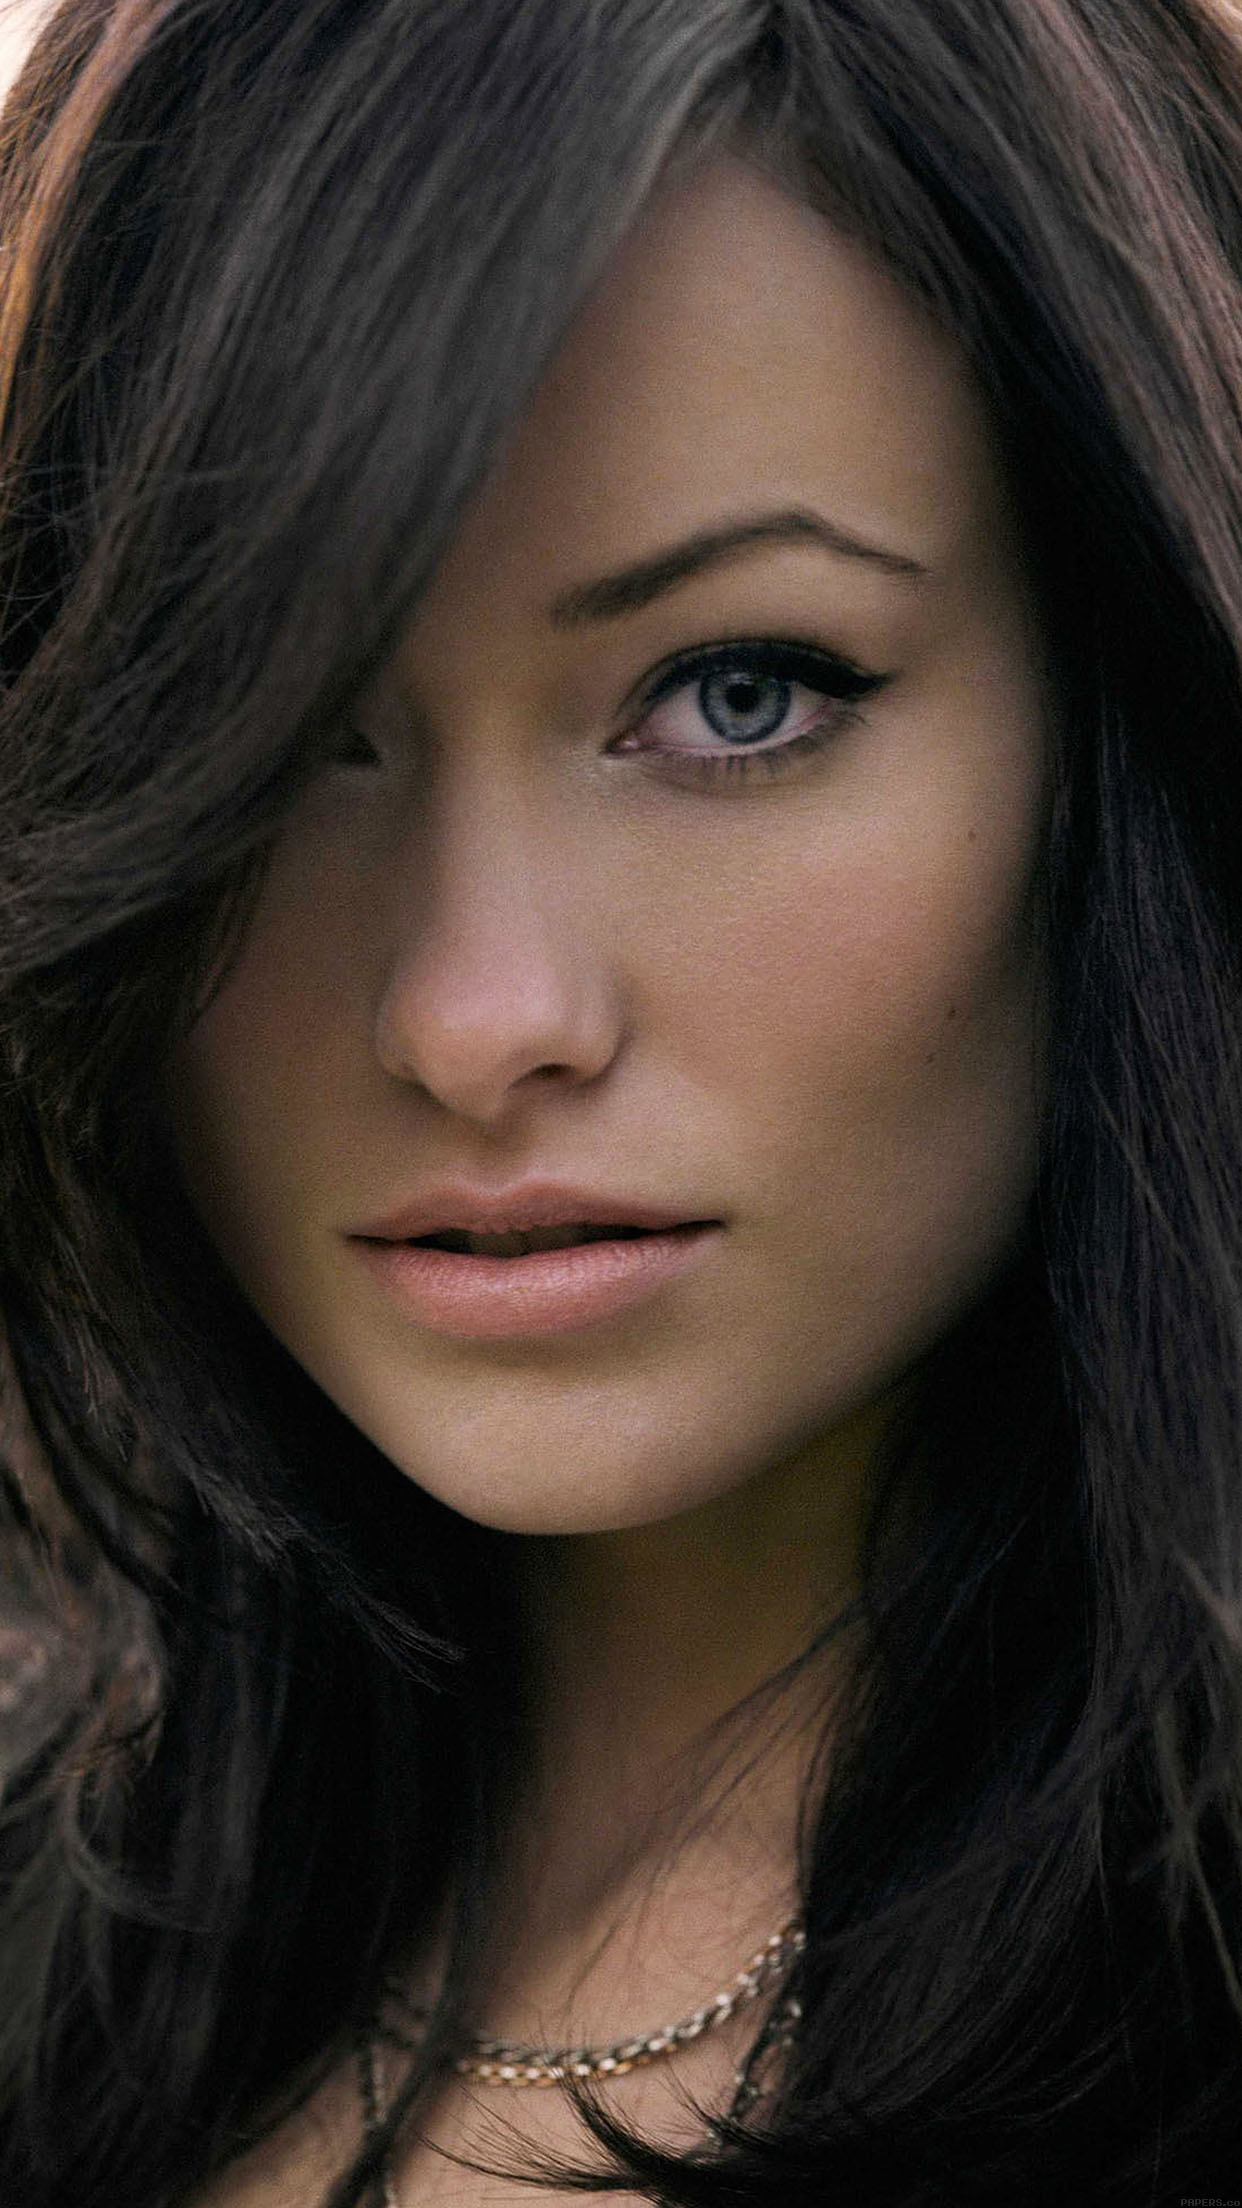 wallpaper olivia wilde stare face girl film android wallpaper android hd wallpapers